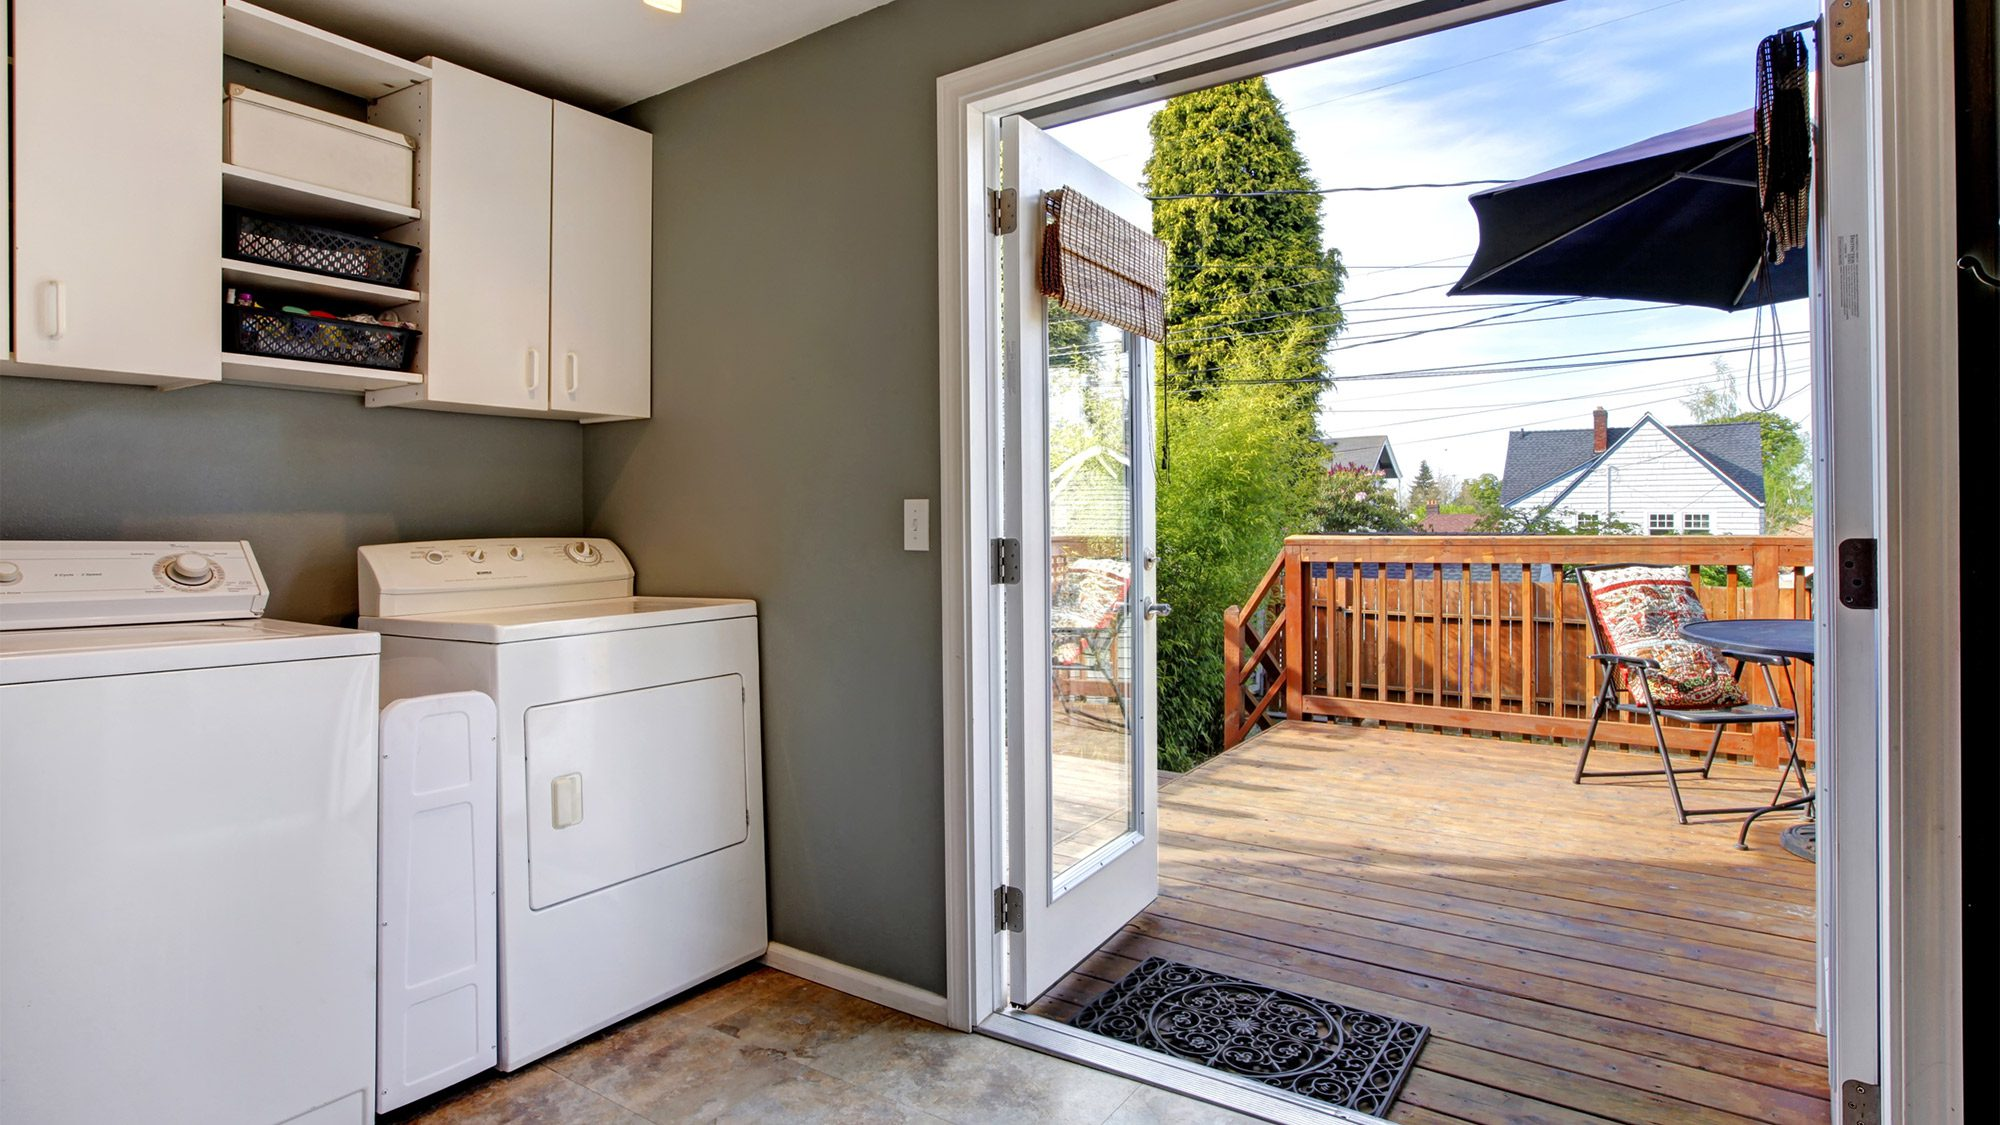 6 Laundry Room Ideas To Make Washing Clothes Actually Enjoyable Realtor Com